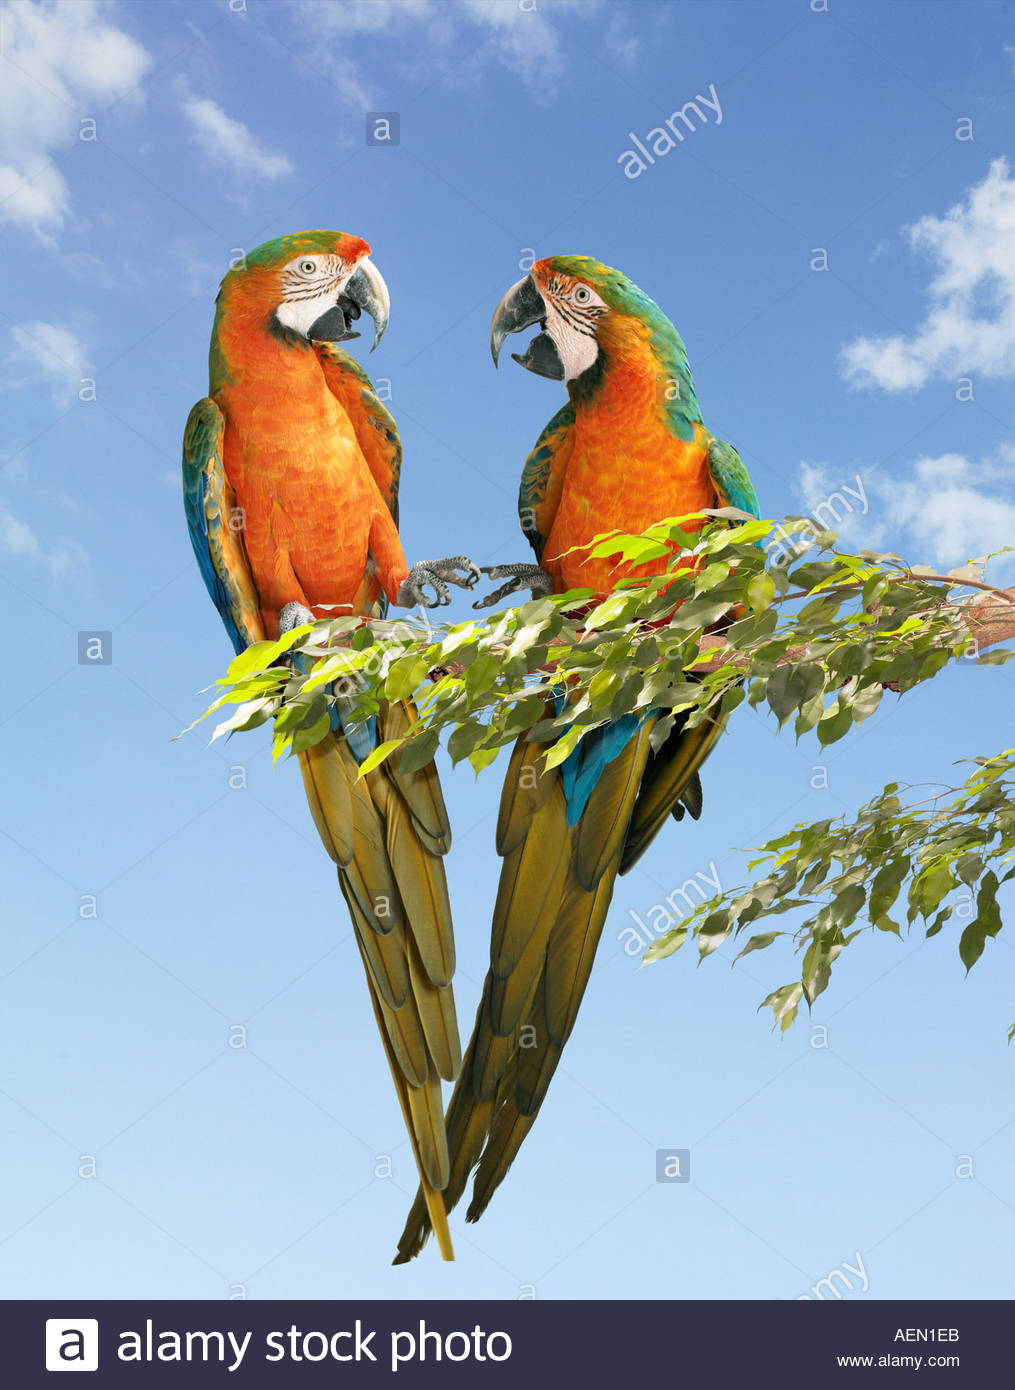 Pair of parrots talking in a tree - Stock Image